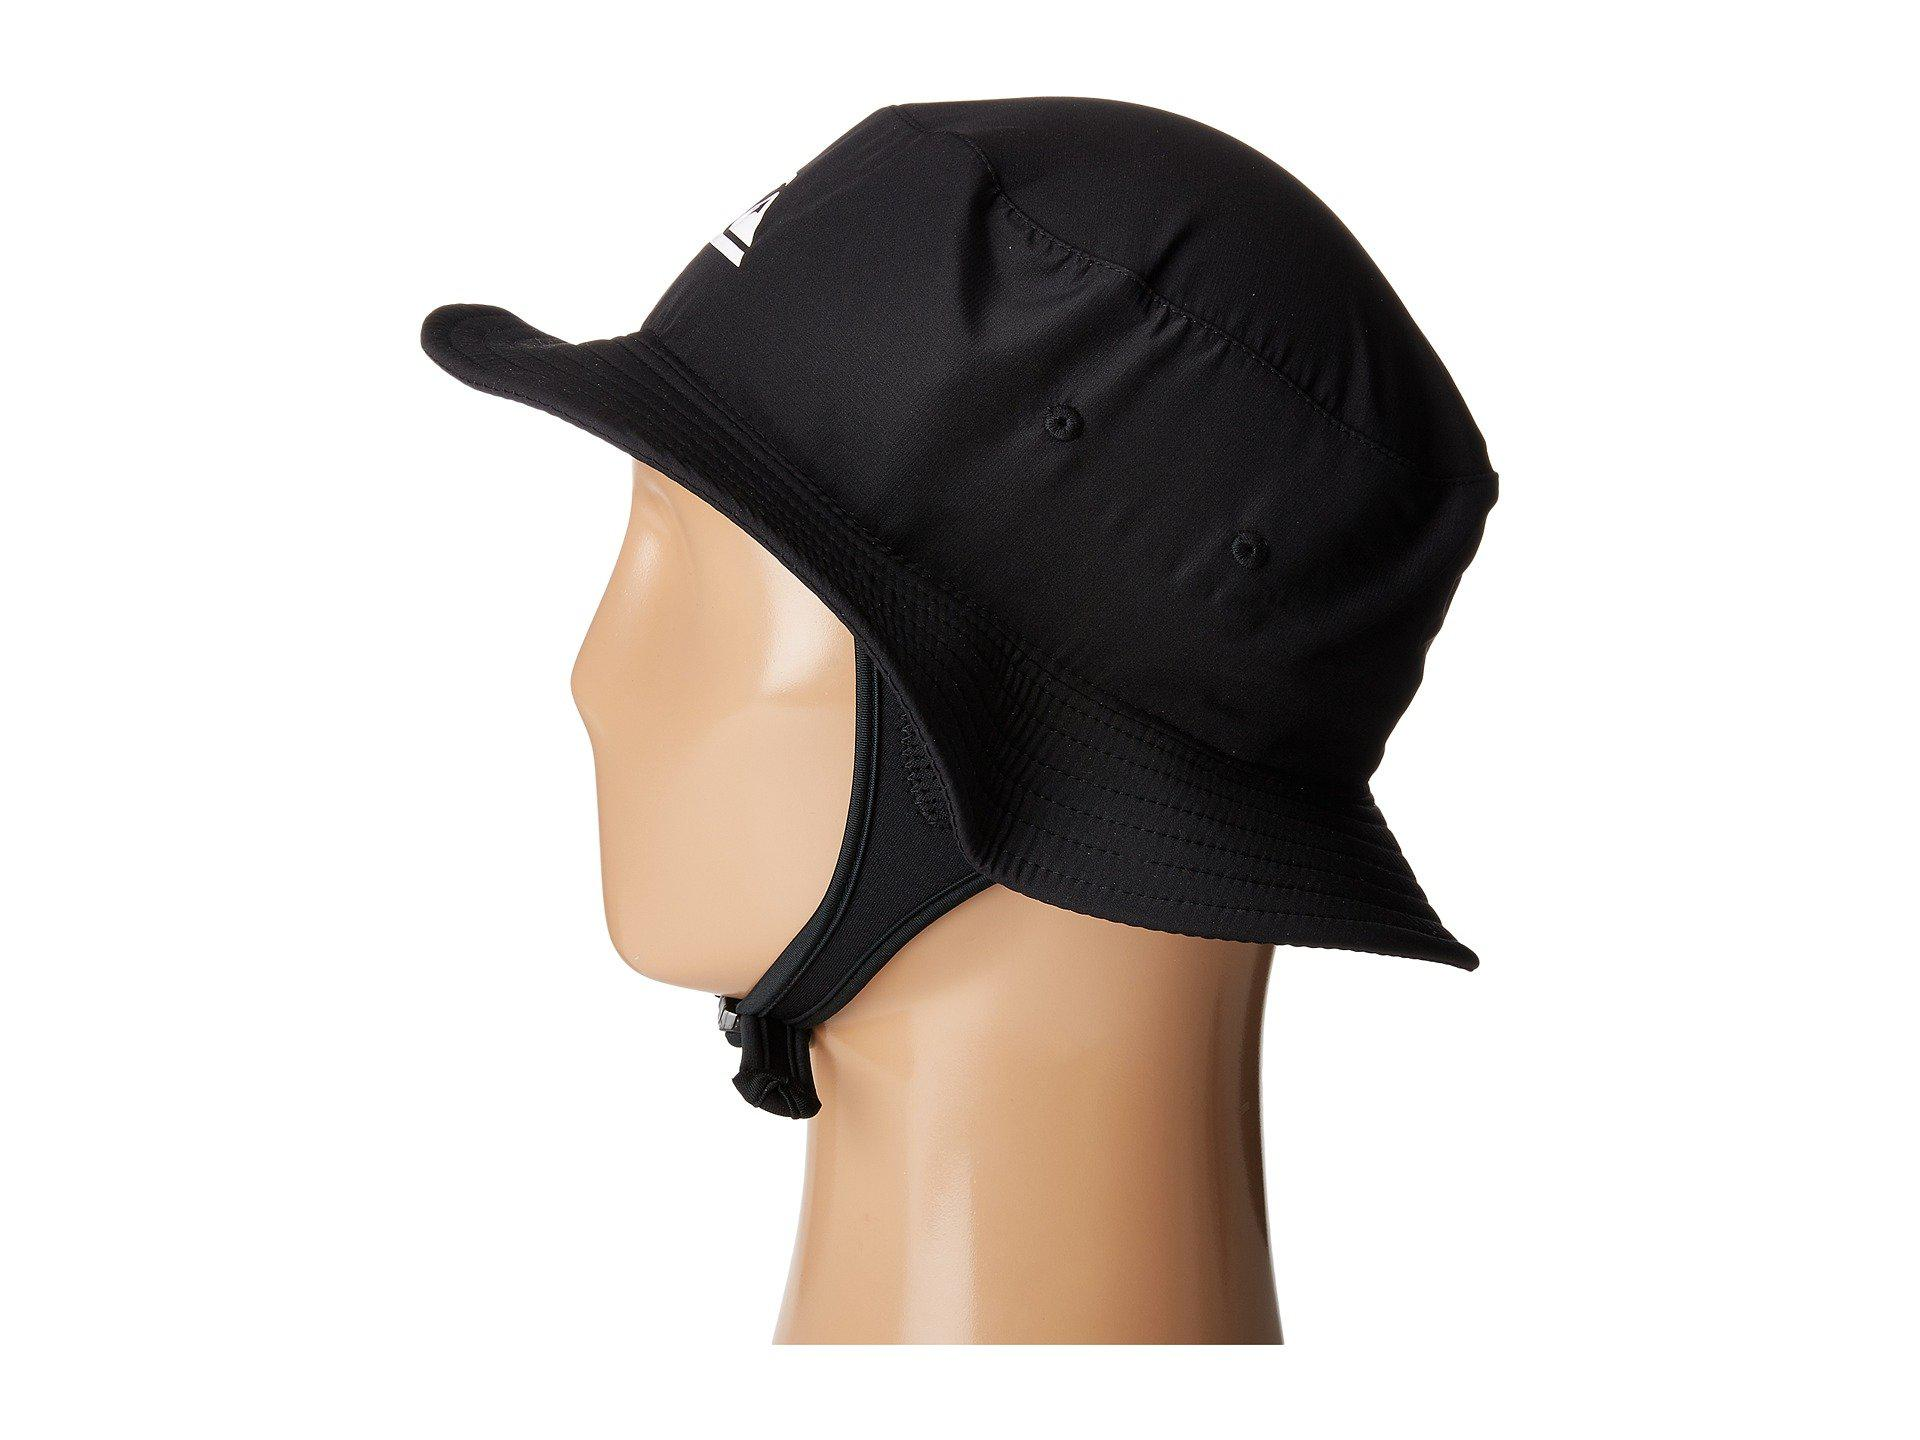 Lyst - Quiksilver Bushmaster Surf Hat (black) Bucket Caps in Black ... 5da4cd34953